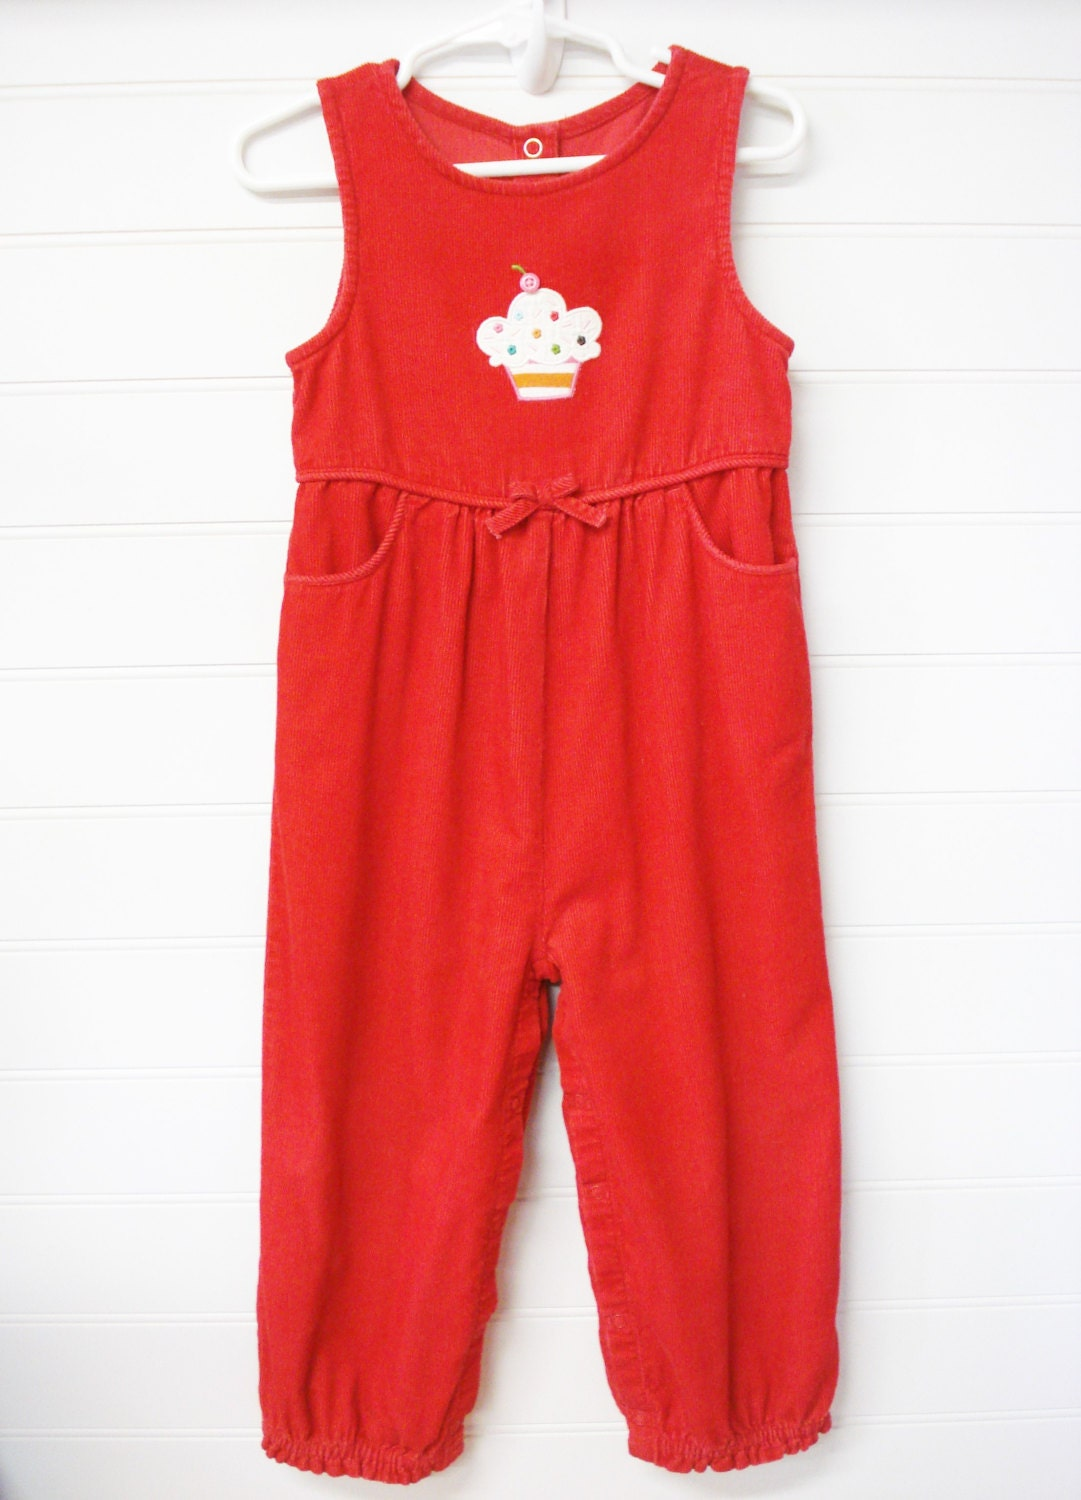 vintage toddler clothes toddler romper corduroy